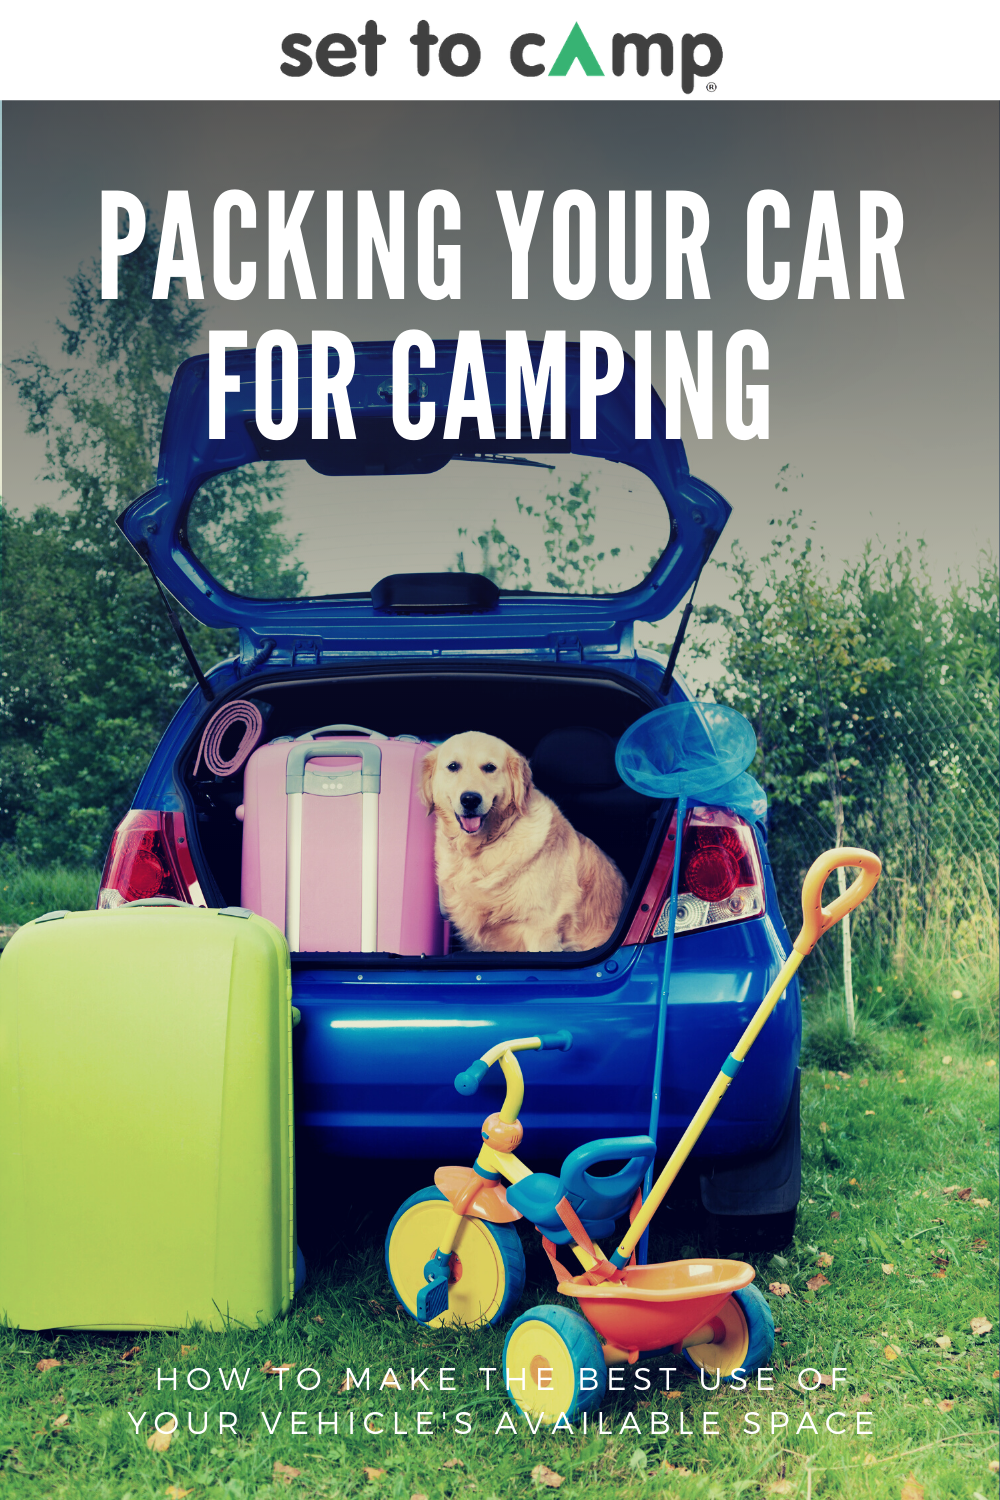 Packing Your Car For Camping Set To Camp In 2020 Camping Camping Packing Camping Set